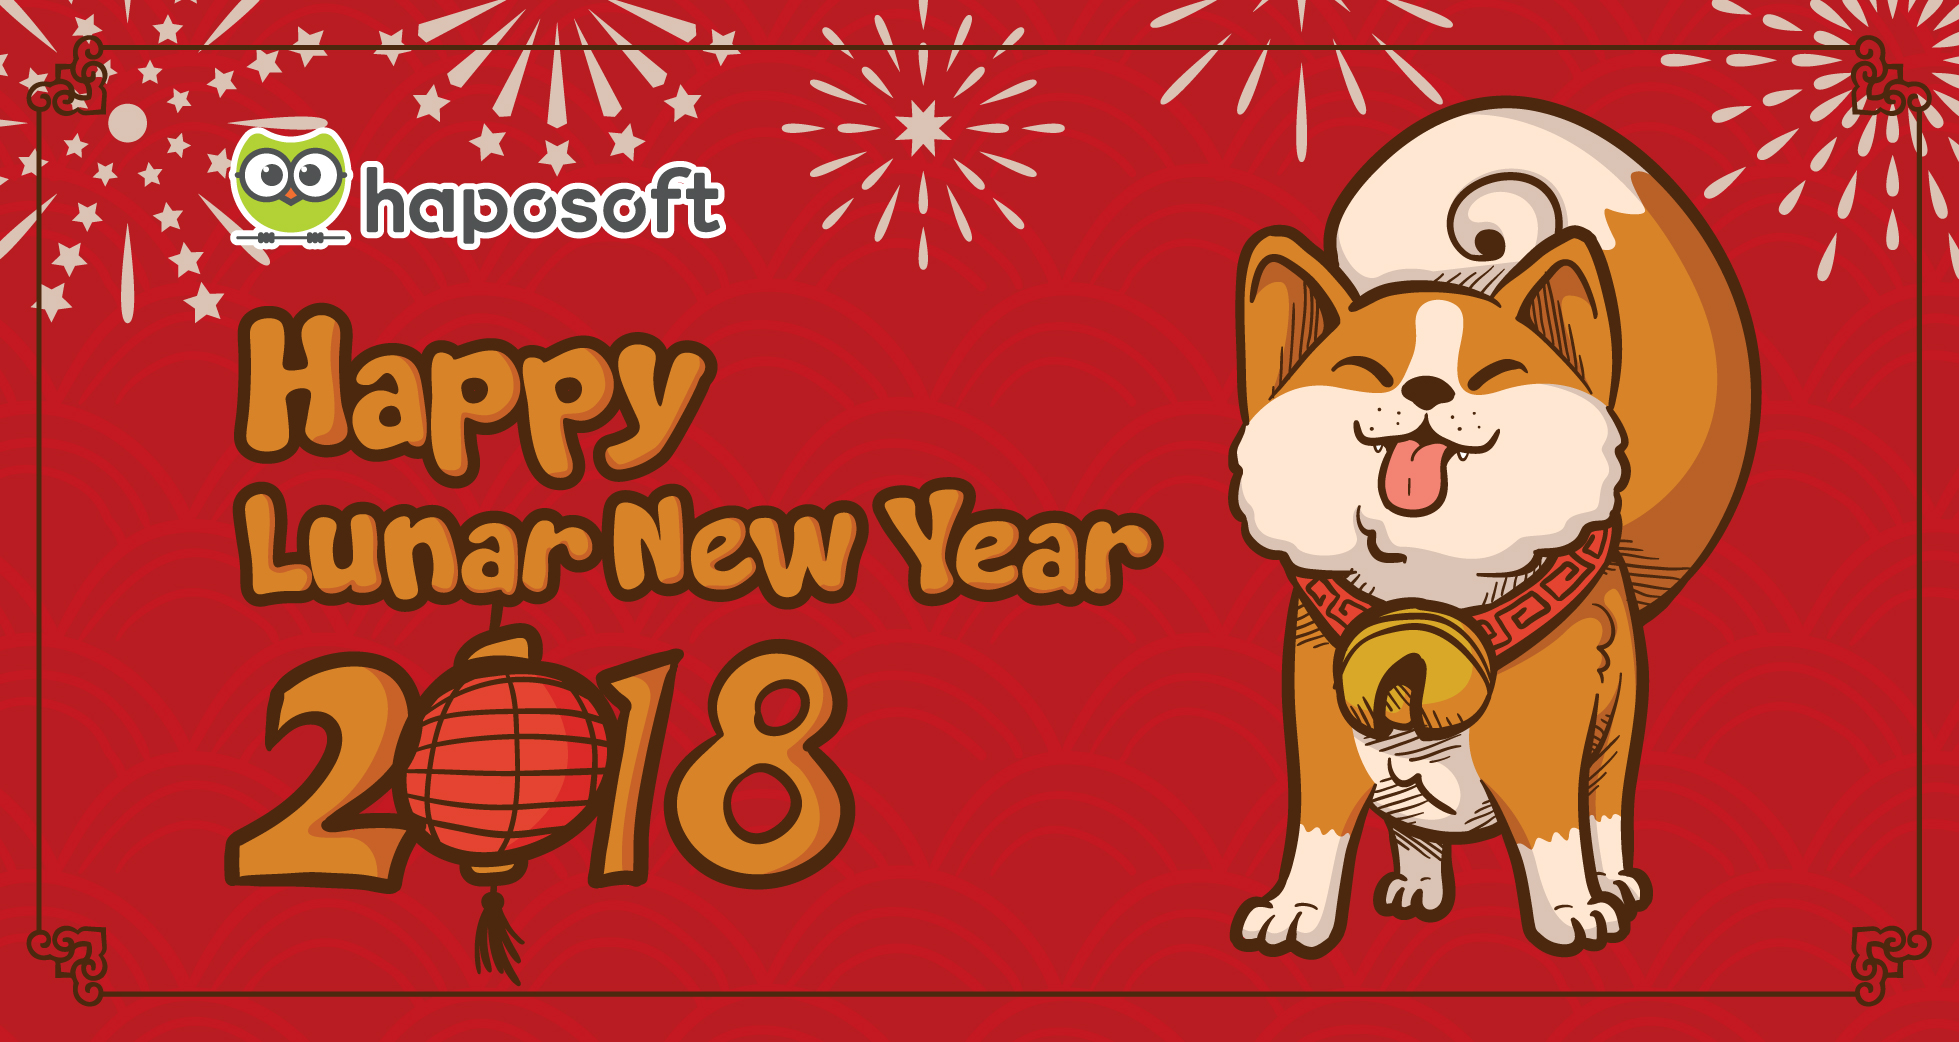 2018 Lunar New Year Holiday